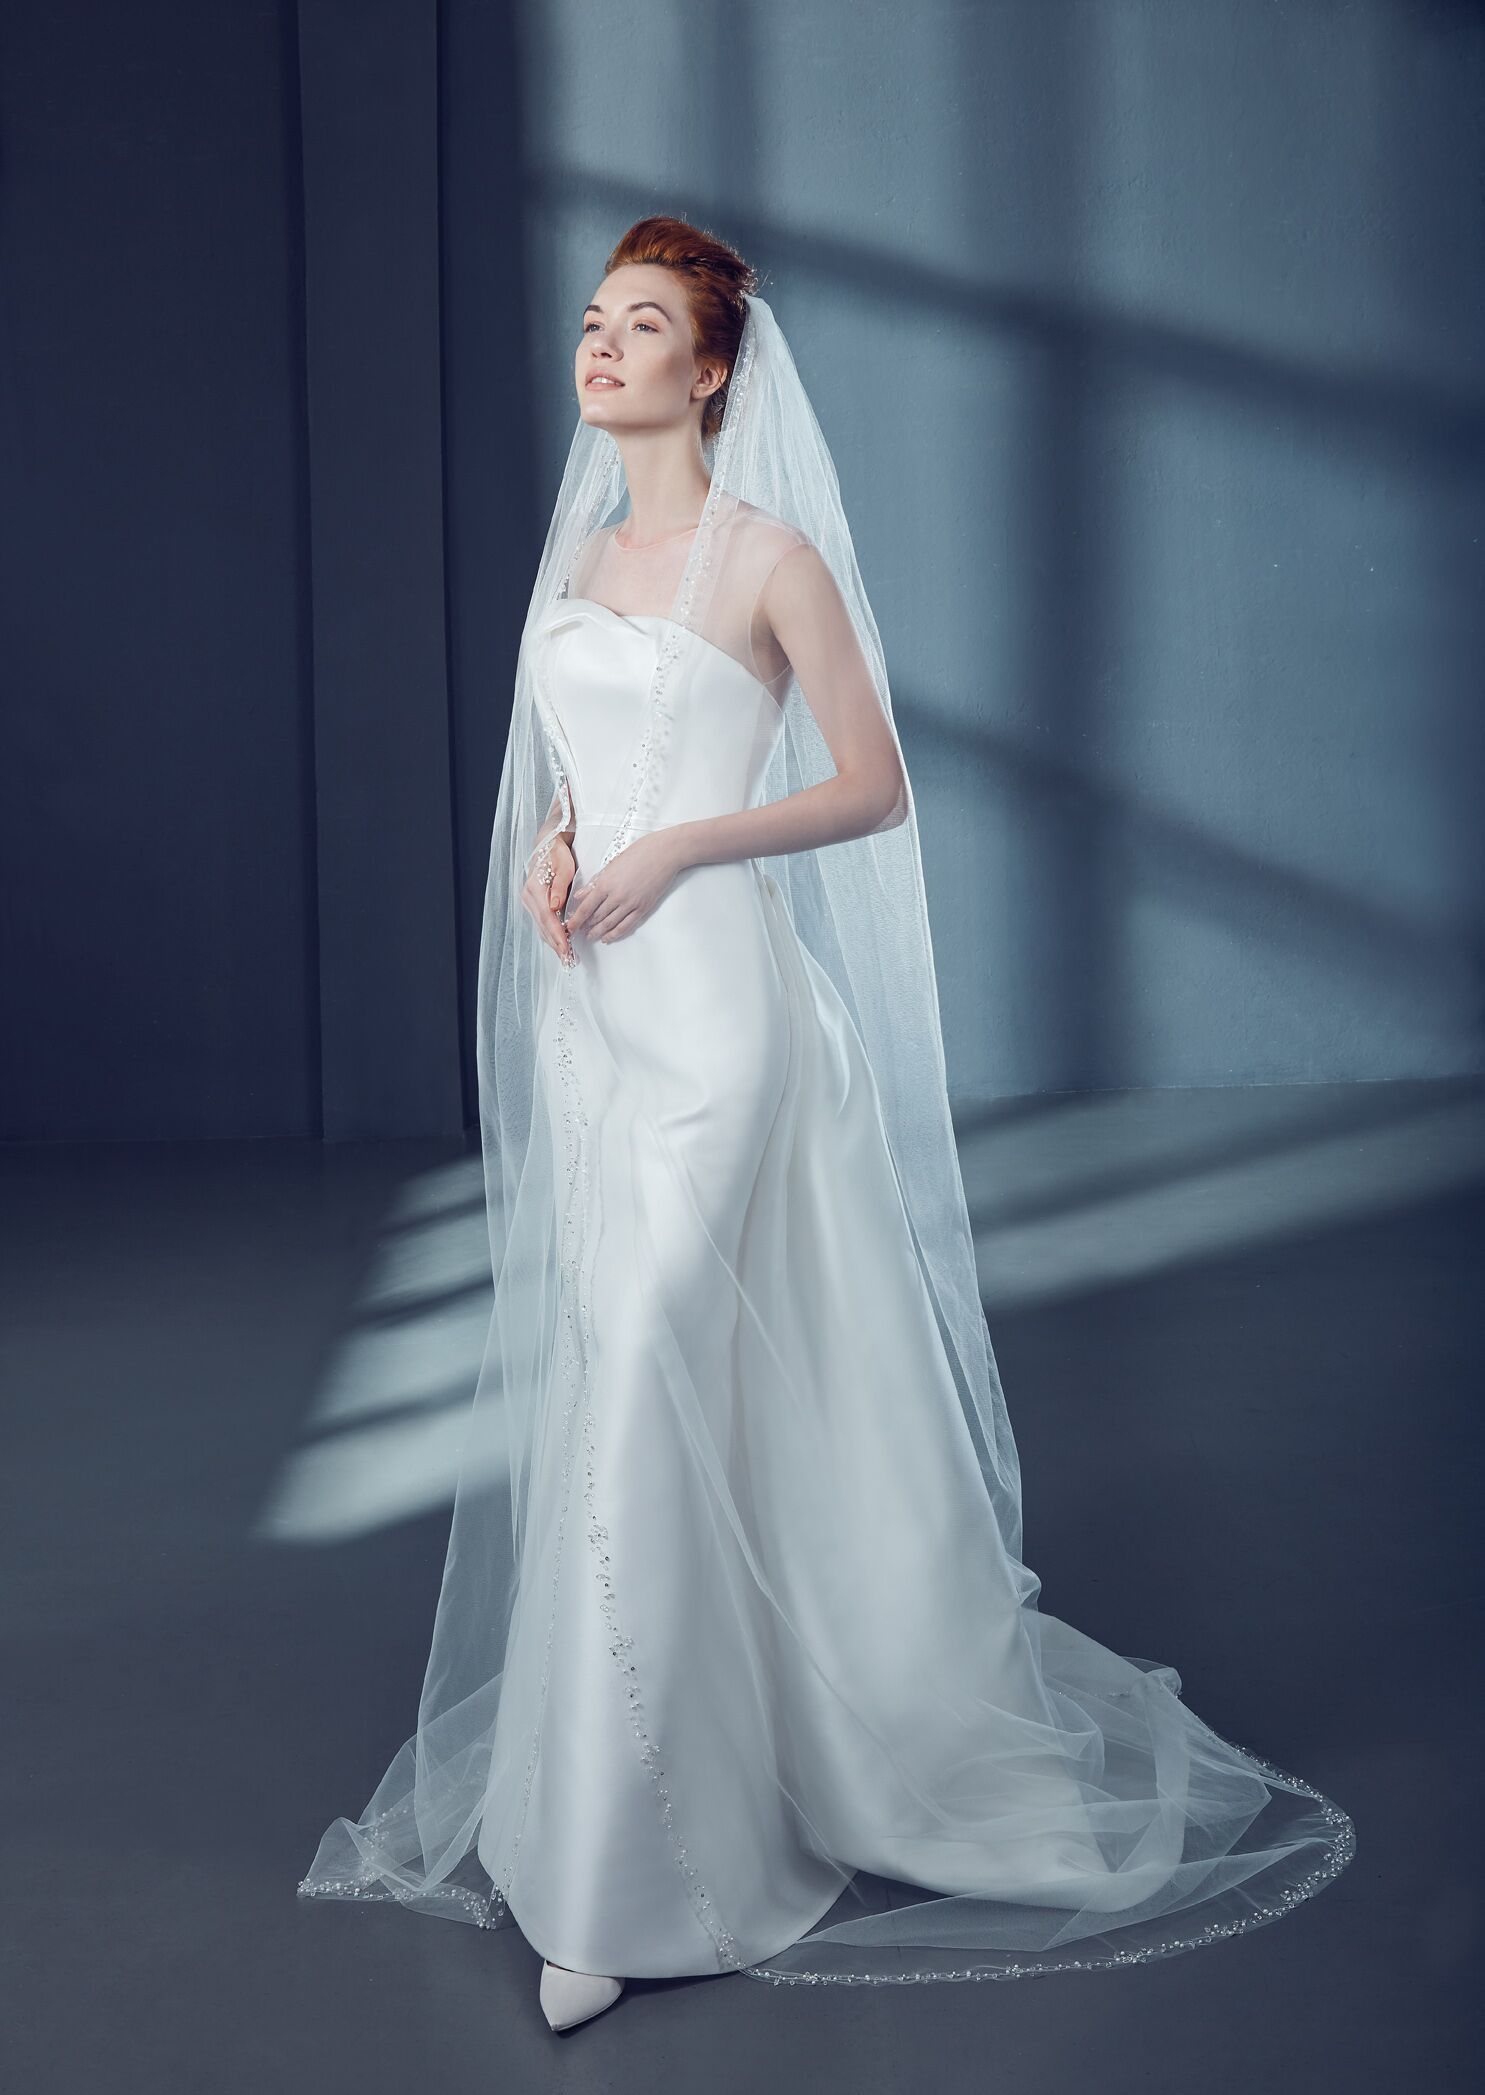 Stunning cathedral length veil in tulle with sparkle detail